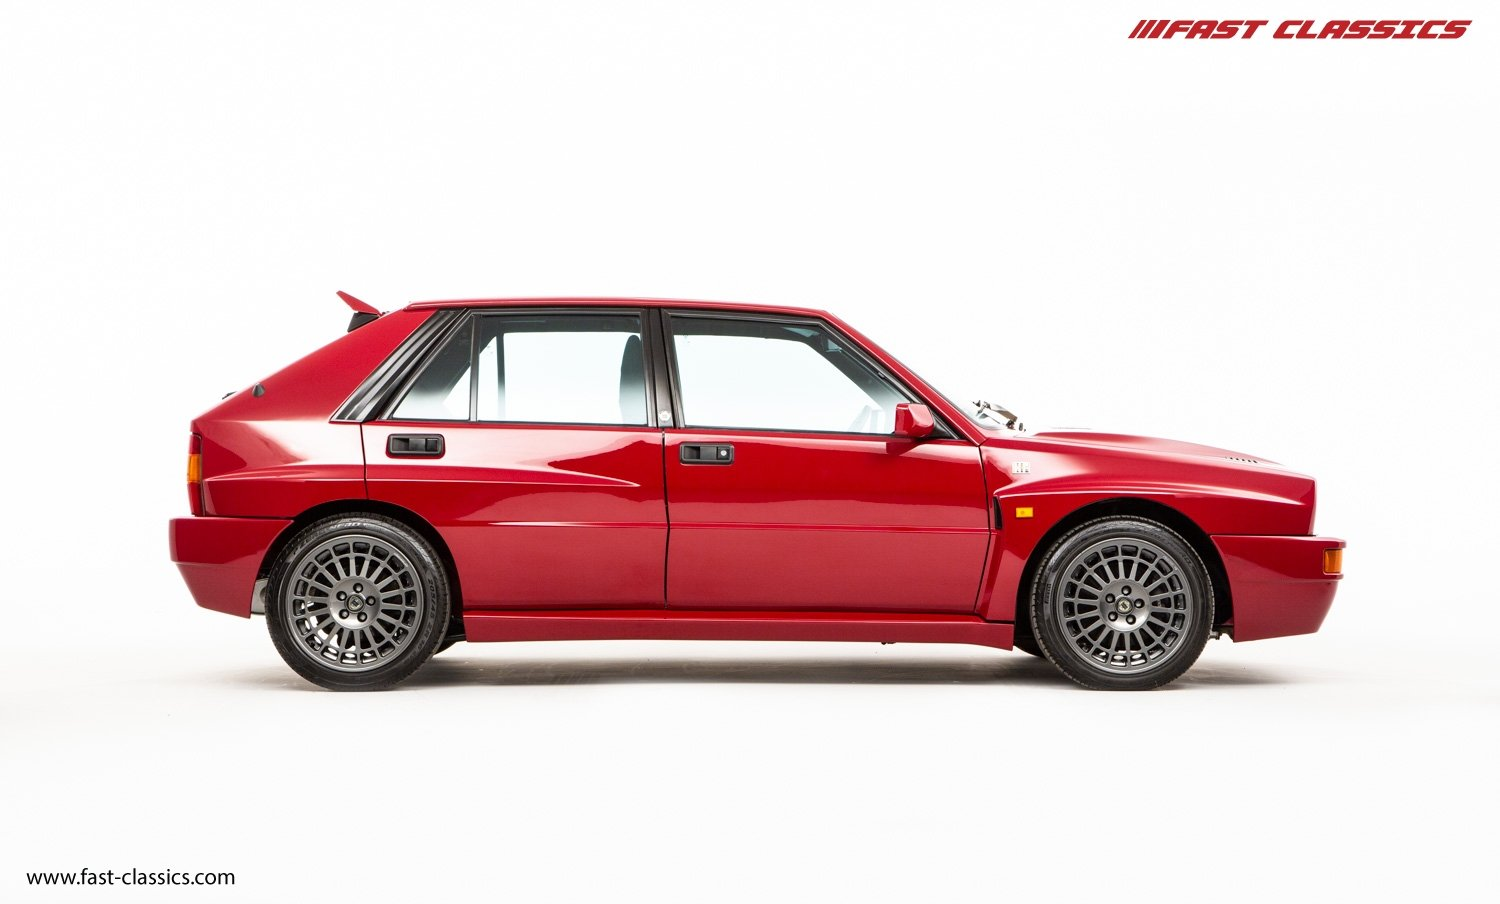 1995 LANCIA DELTA EDIZIONE FINALE // 1 OF 250 // 19K MILES  For Sale (picture 1 of 24)